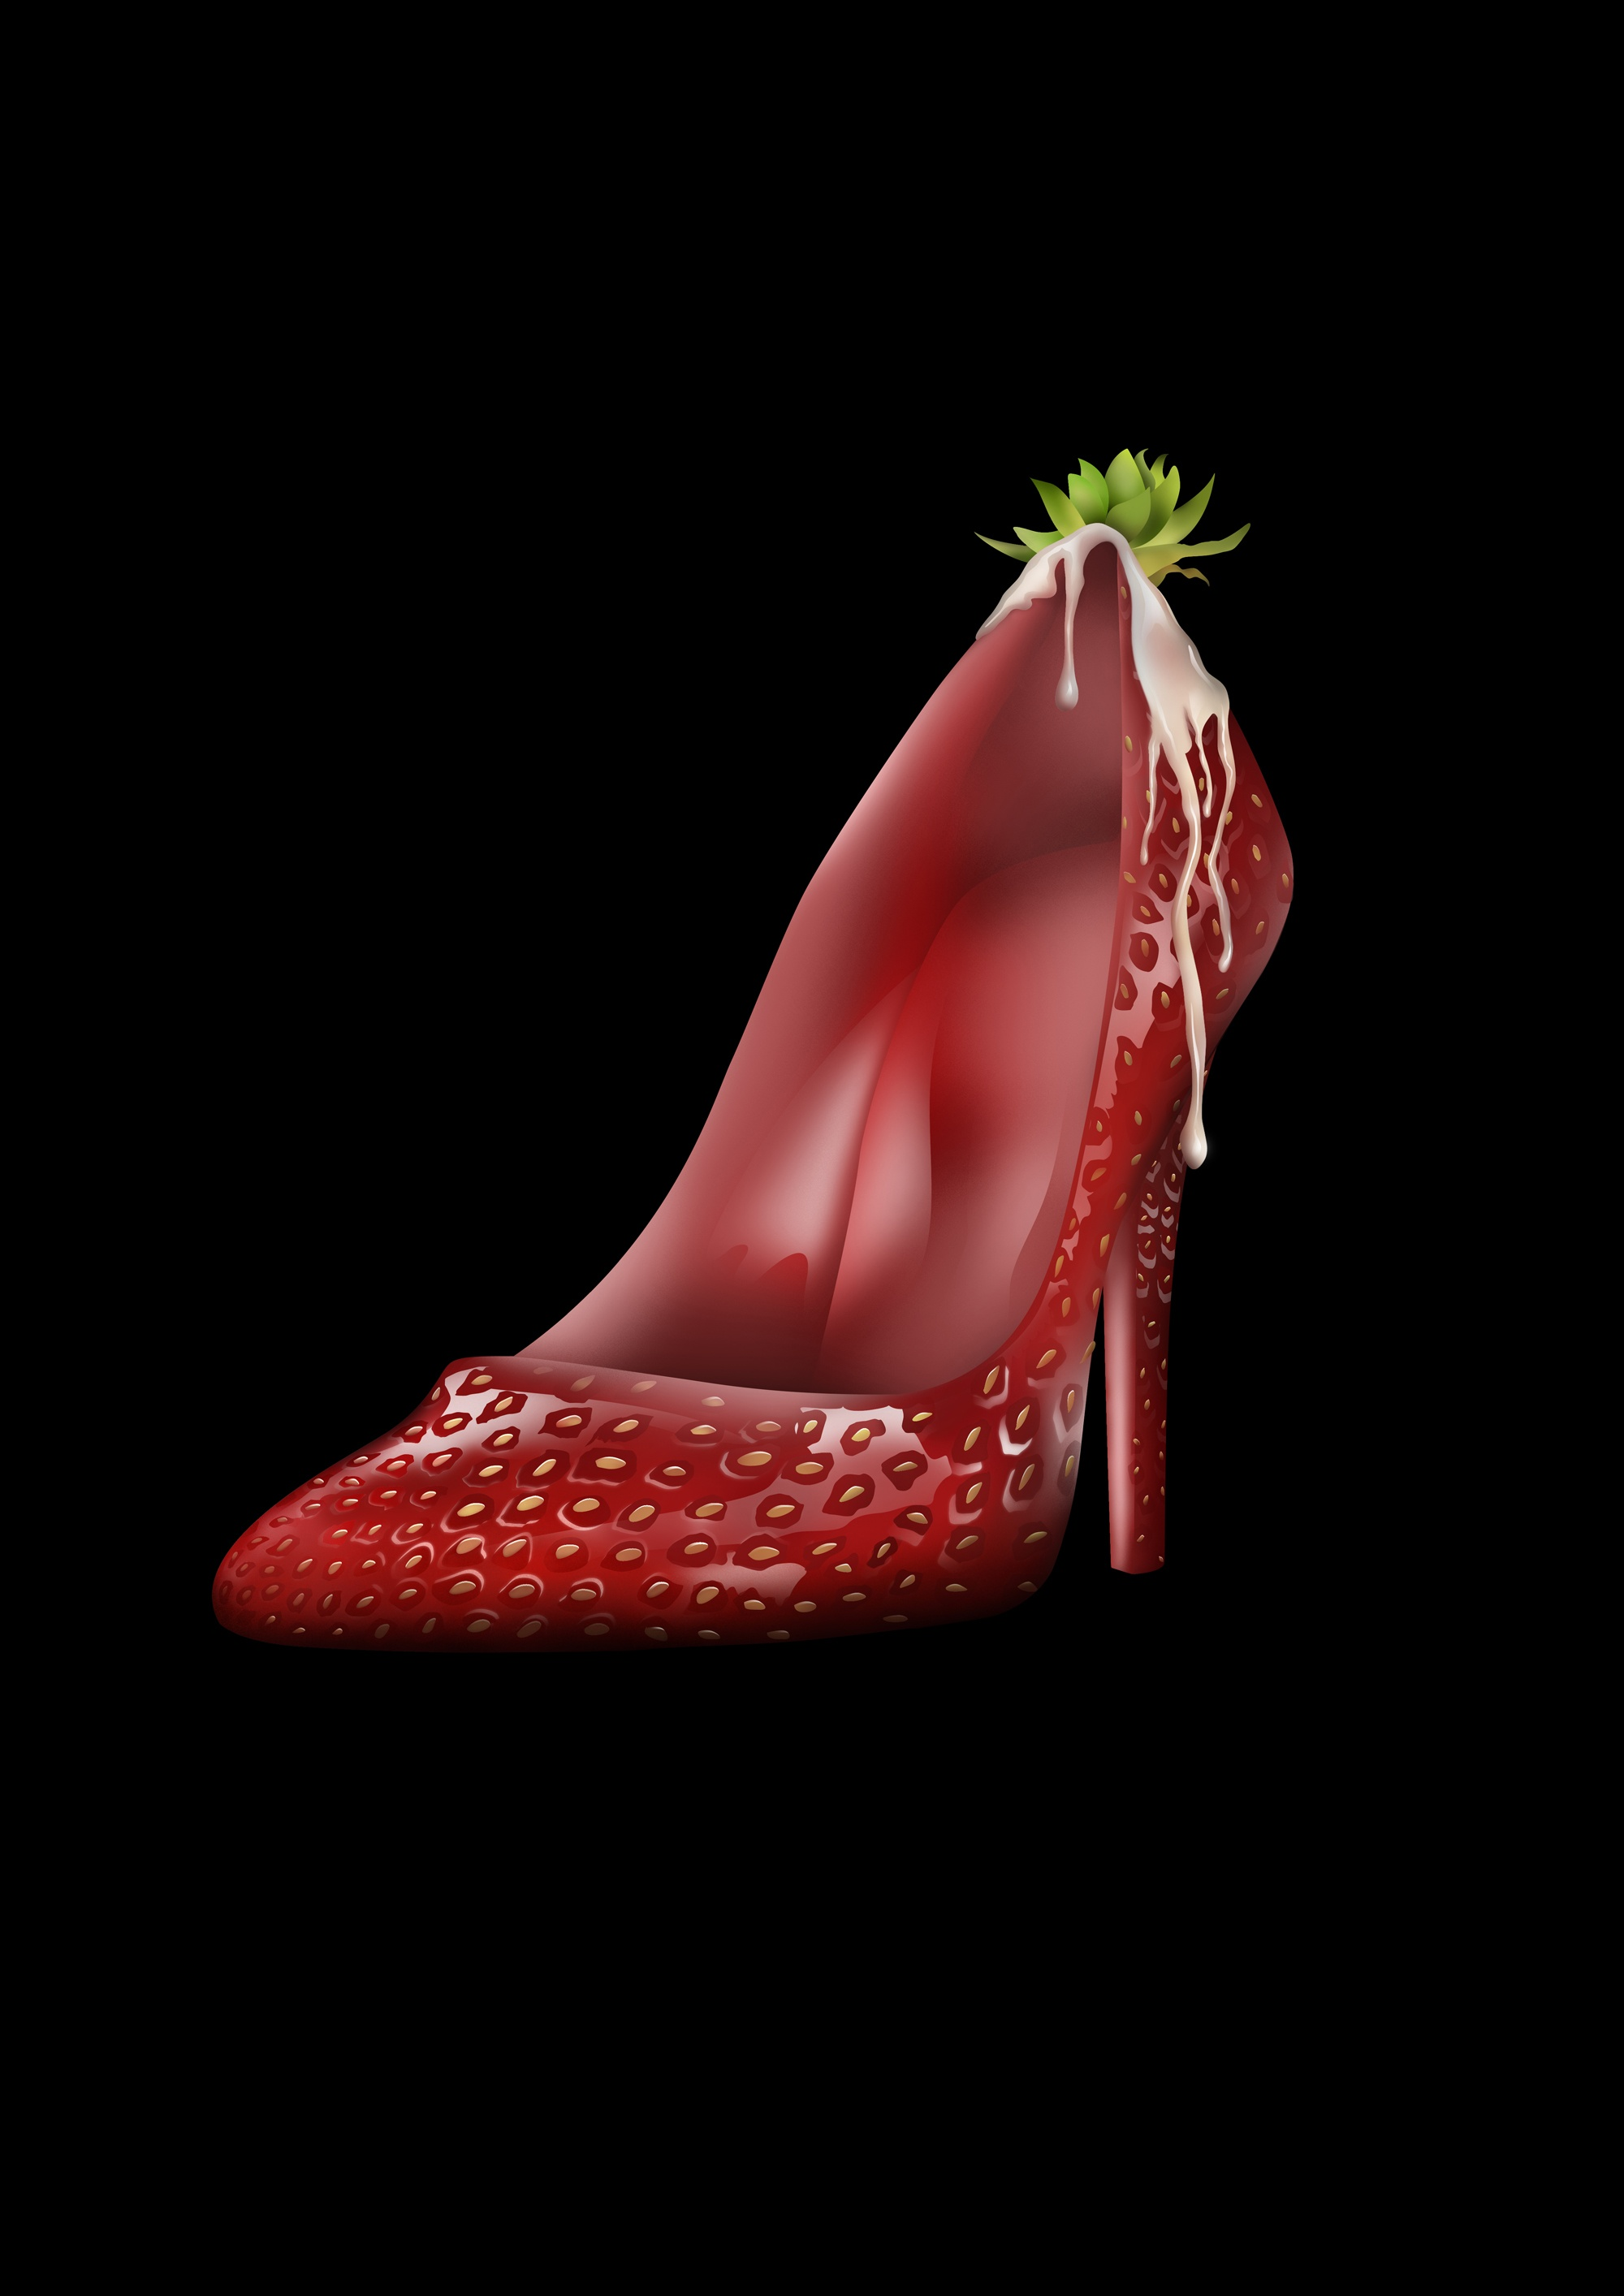 Heels 1 (Strawberry and Cream) JPG.jpg